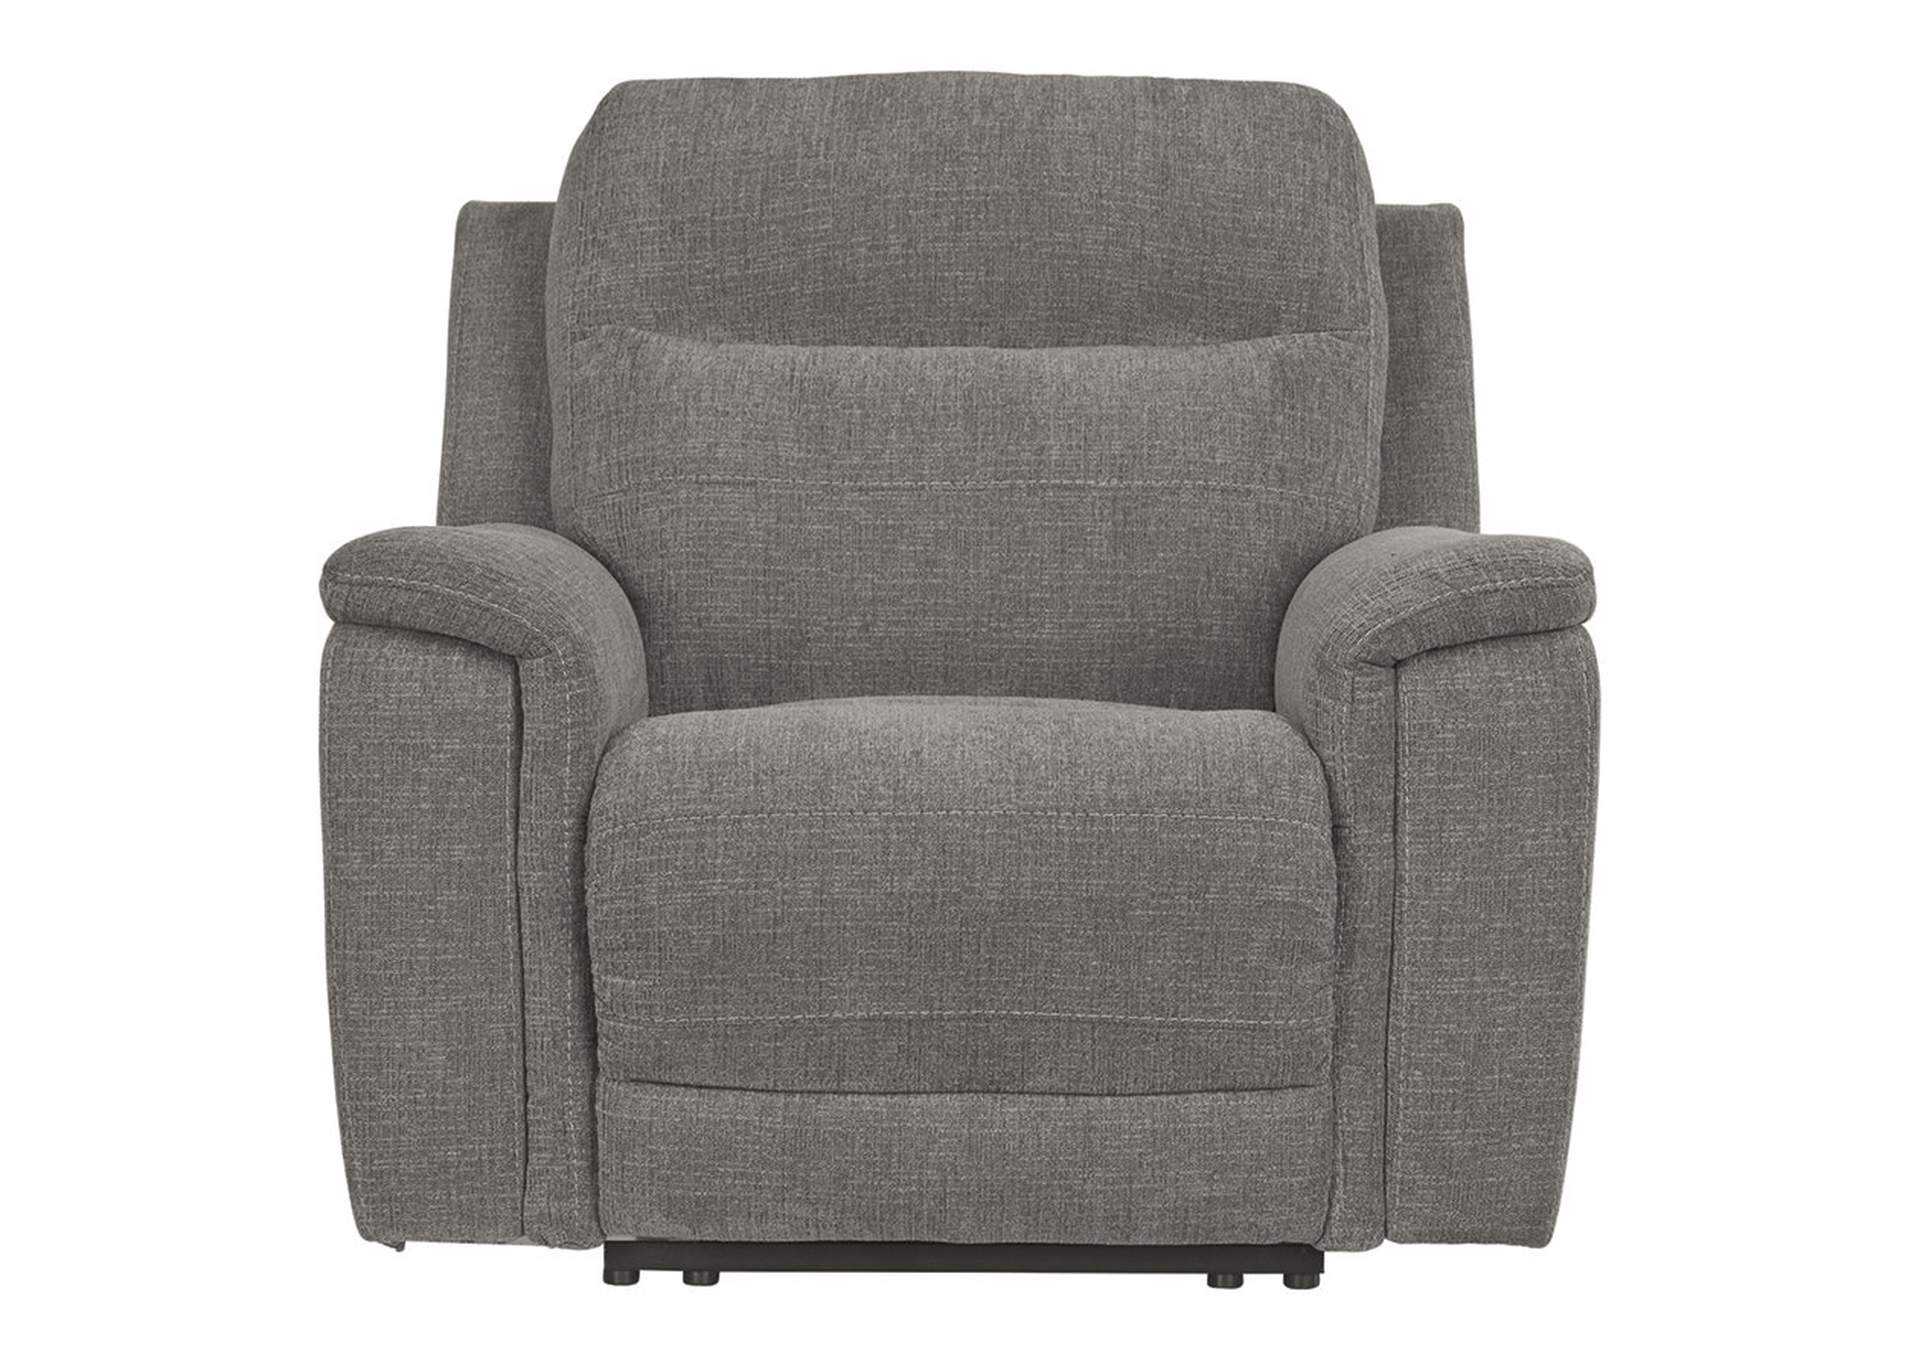 Mouttrie Smoke Power Recliner,Signature Design By Ashley